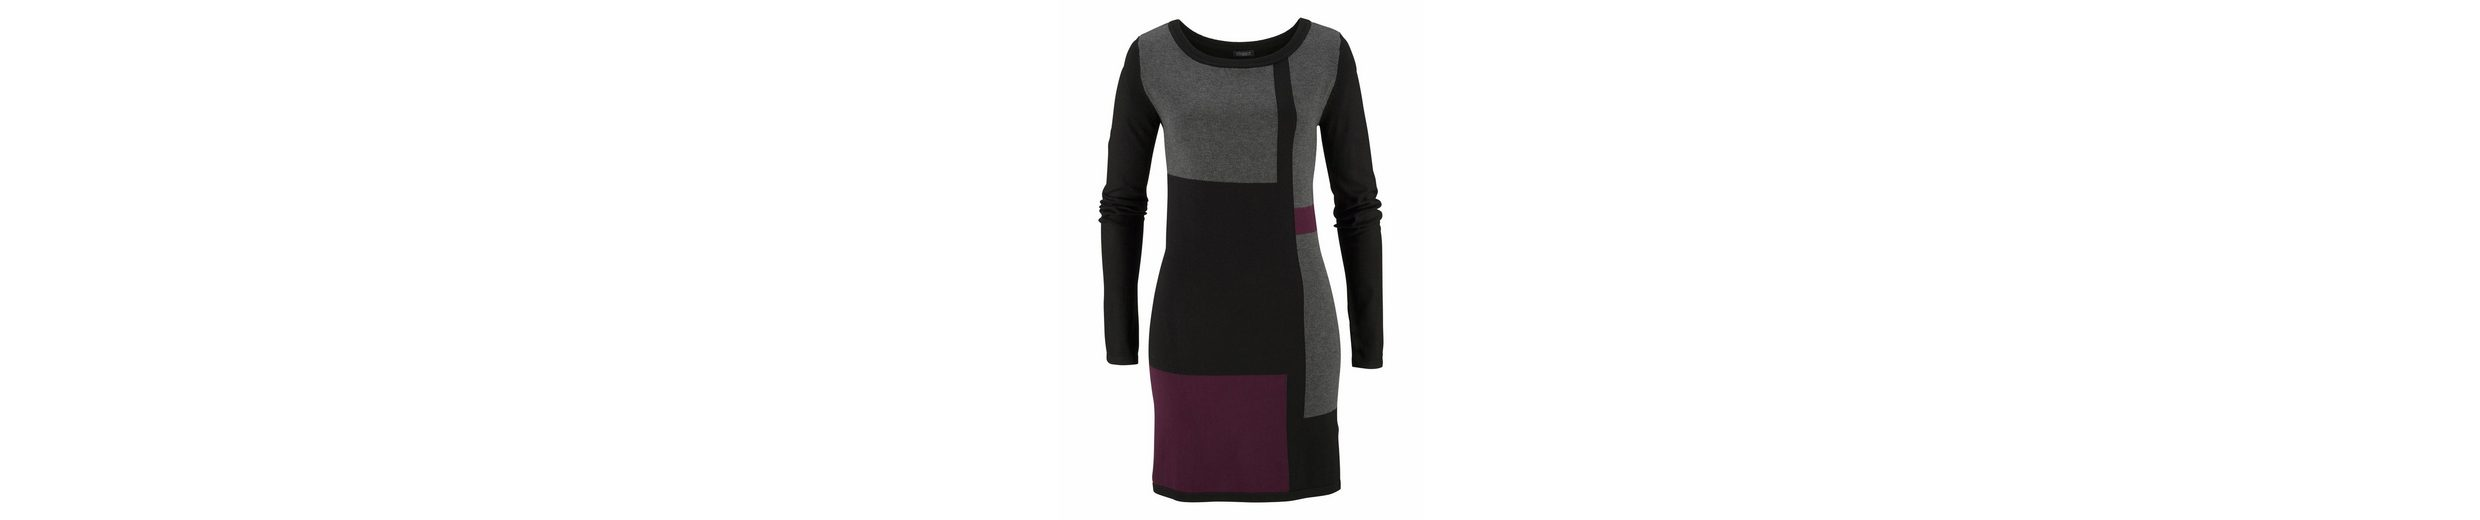 Vivance Strickkleid, im Colourblocking